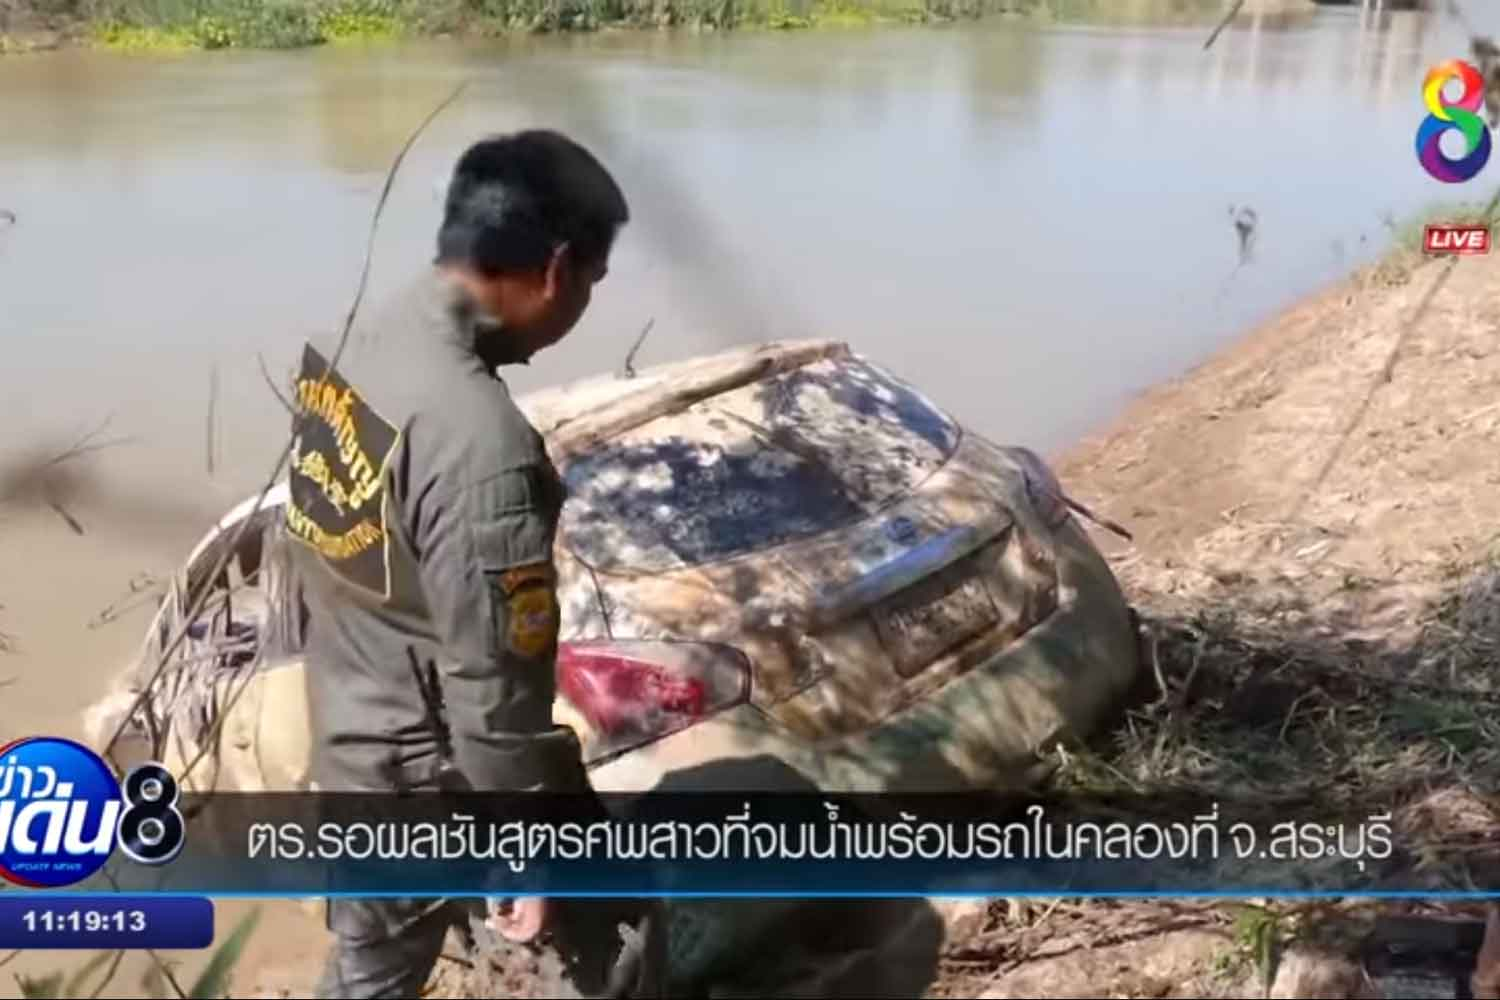 A rescue worker looks at a white Nissan Pulsar car hauled out of an irrigation canal in Nong Don district of Saraburi on Monday. A human skeleton wrapped in a bed sheet was found inside. (Screenshot from TV channel 8)